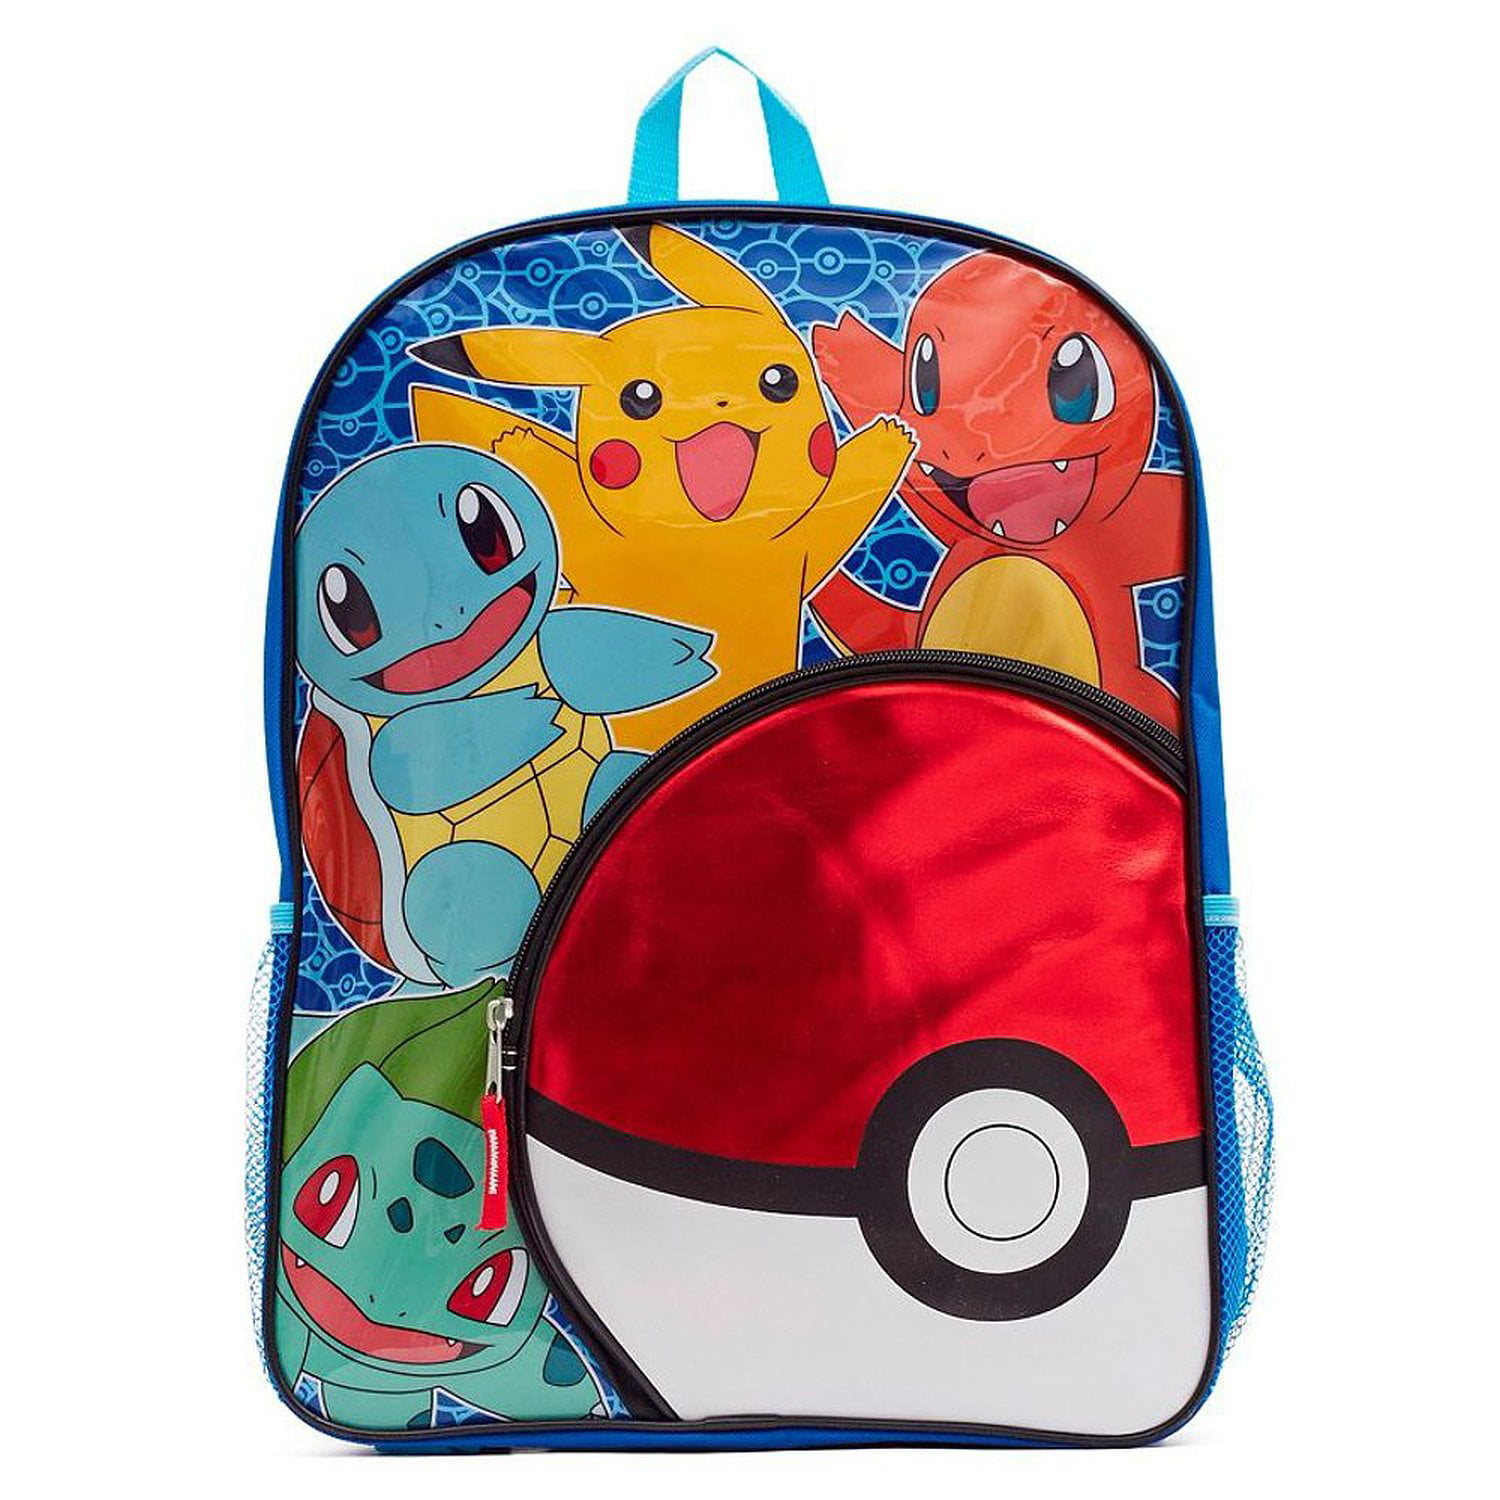 Shopitfashion On Walmart Seller Reviews Marketplace Rating